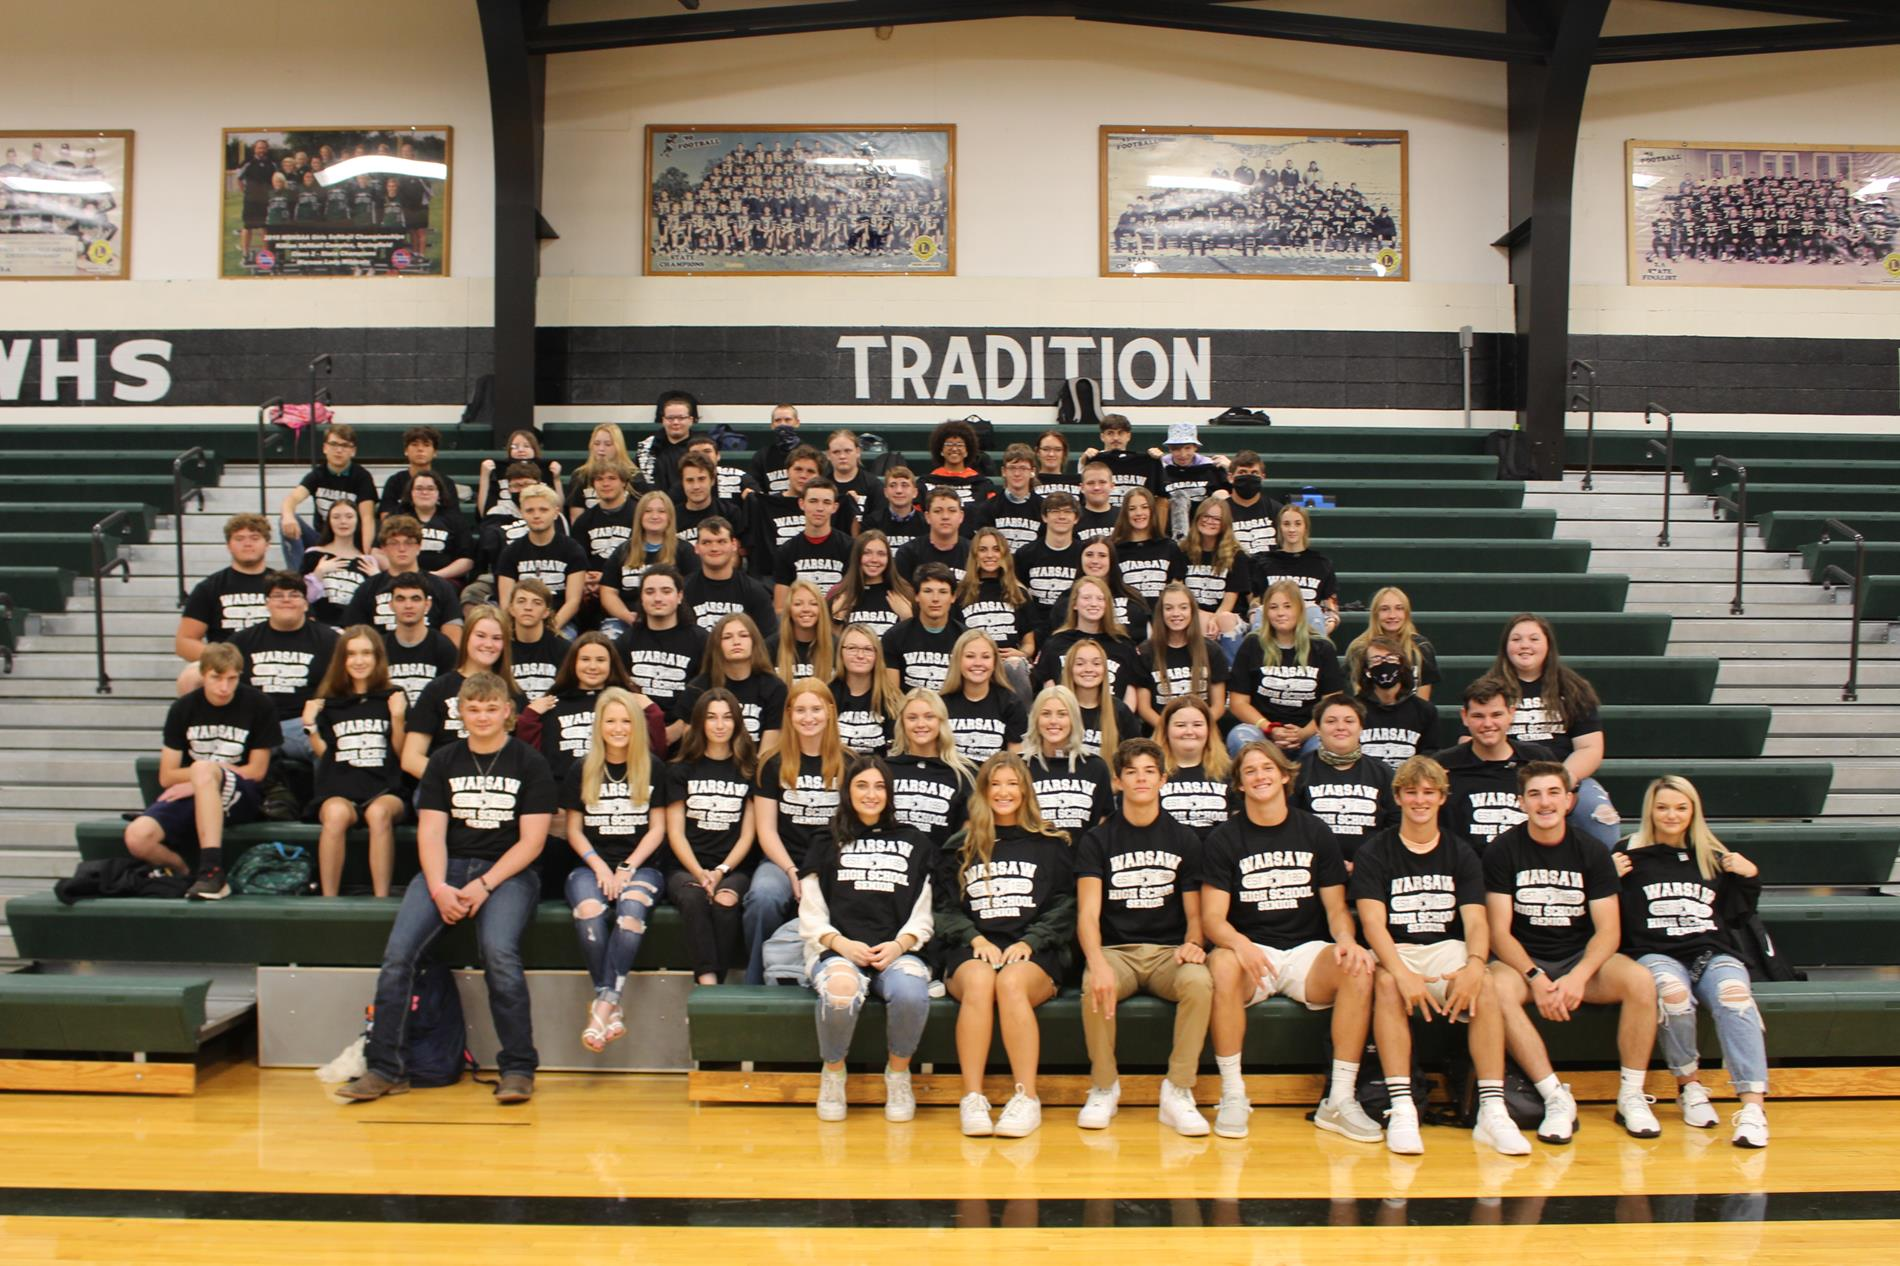 WHS CLASS OF 2022